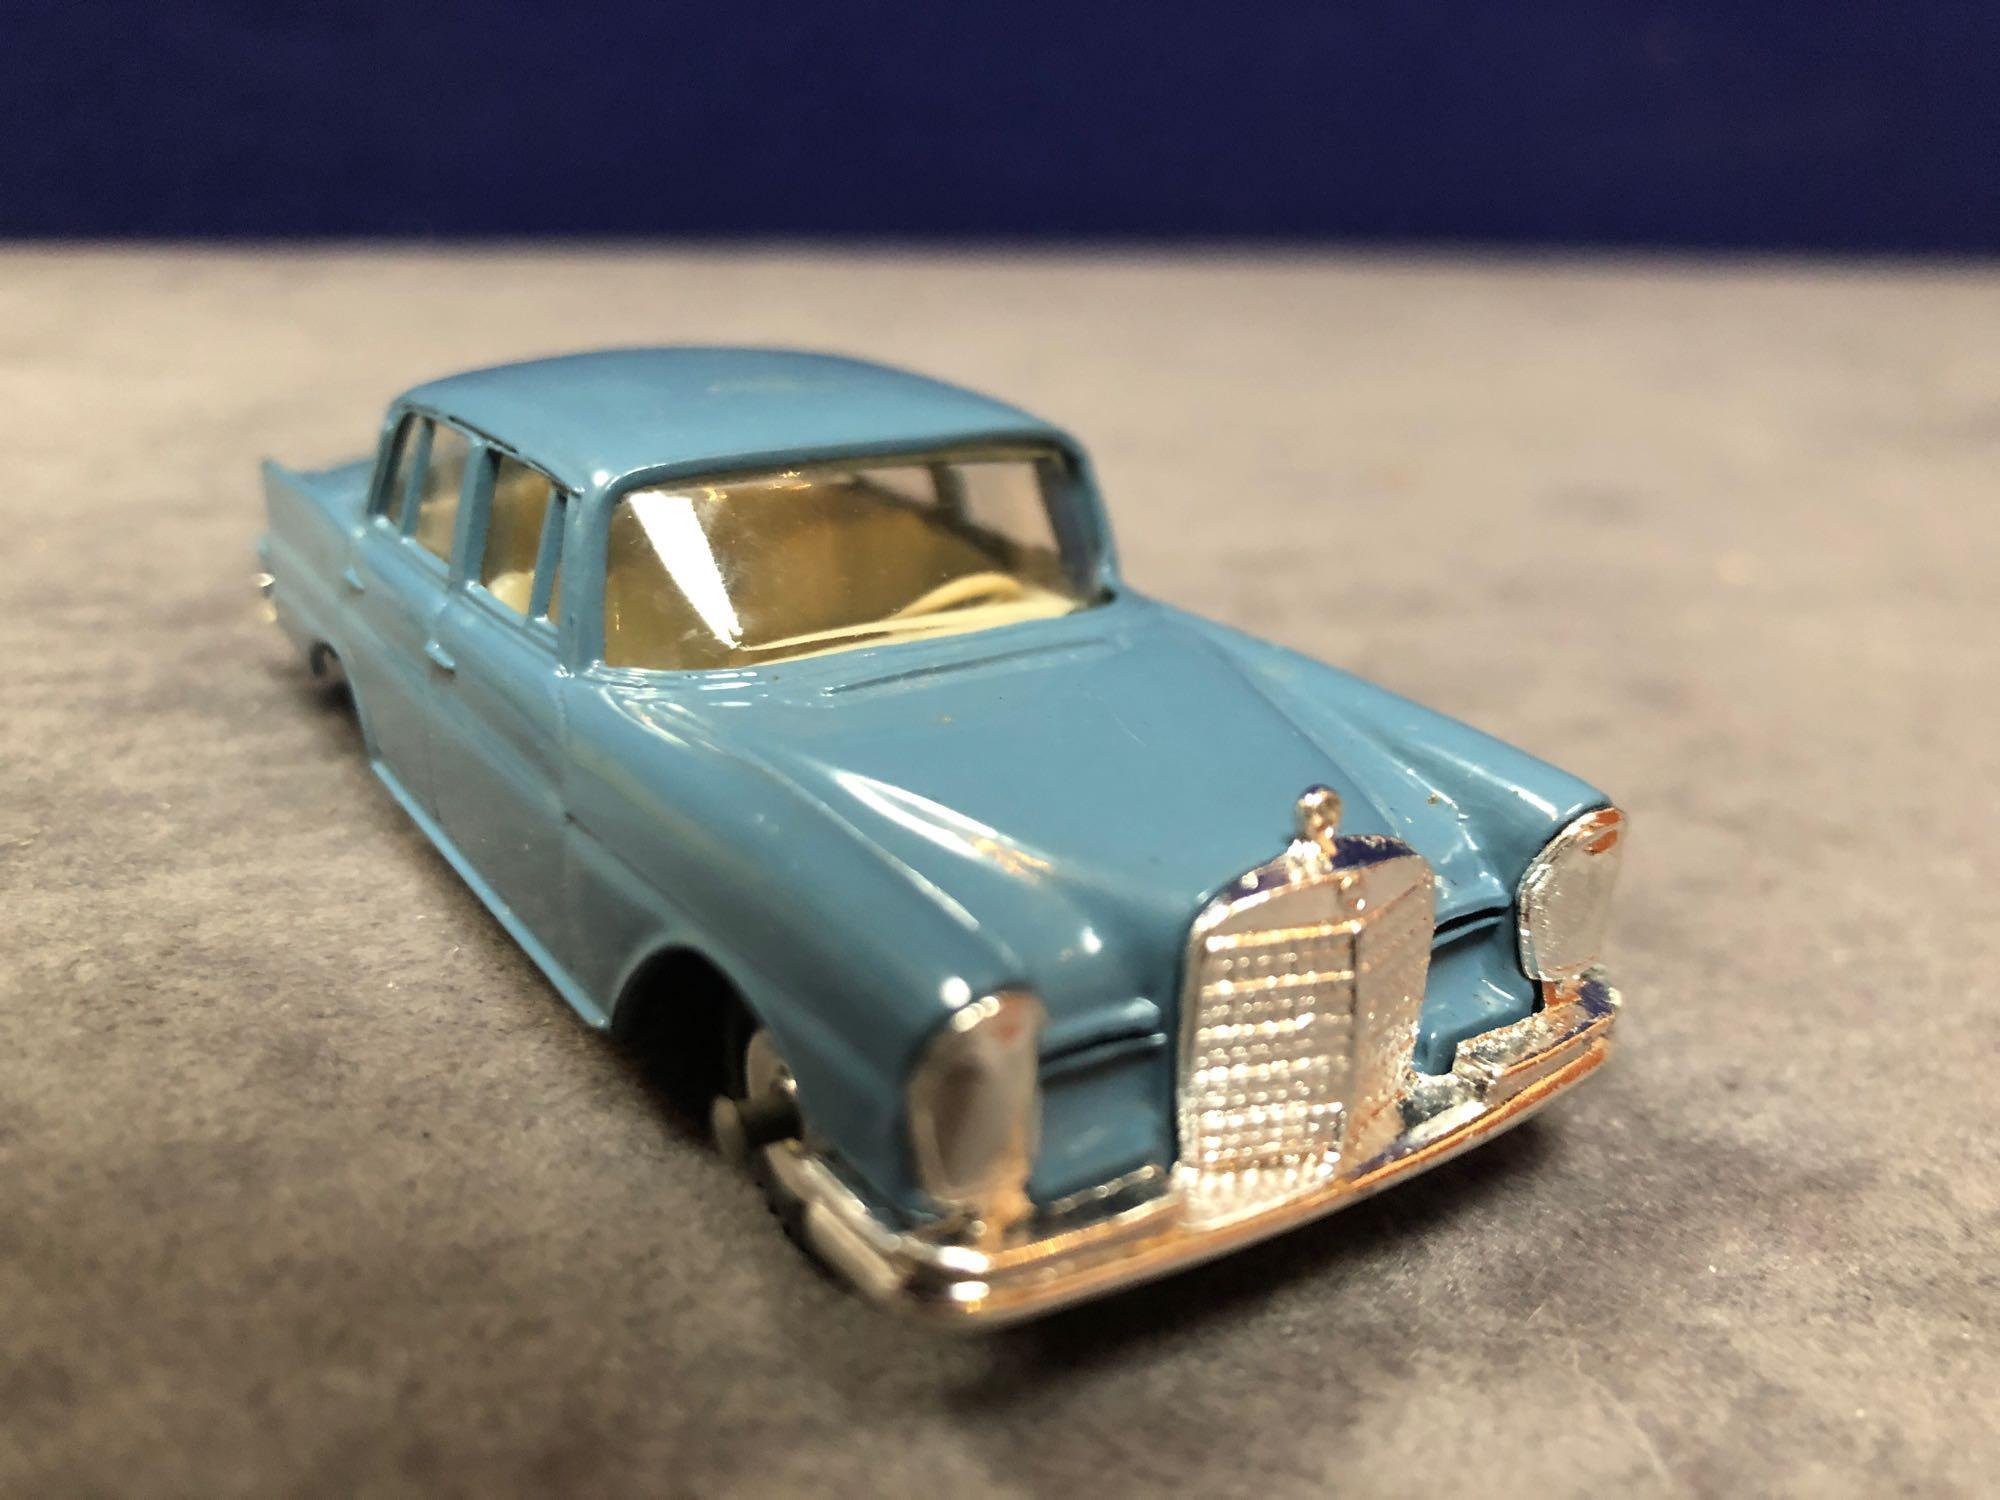 Dinky #186 Mercedes-Benz 220 SE Blue - Petrol Blue Body With White Interior. Spun Hubs. Mint in - Image 2 of 4